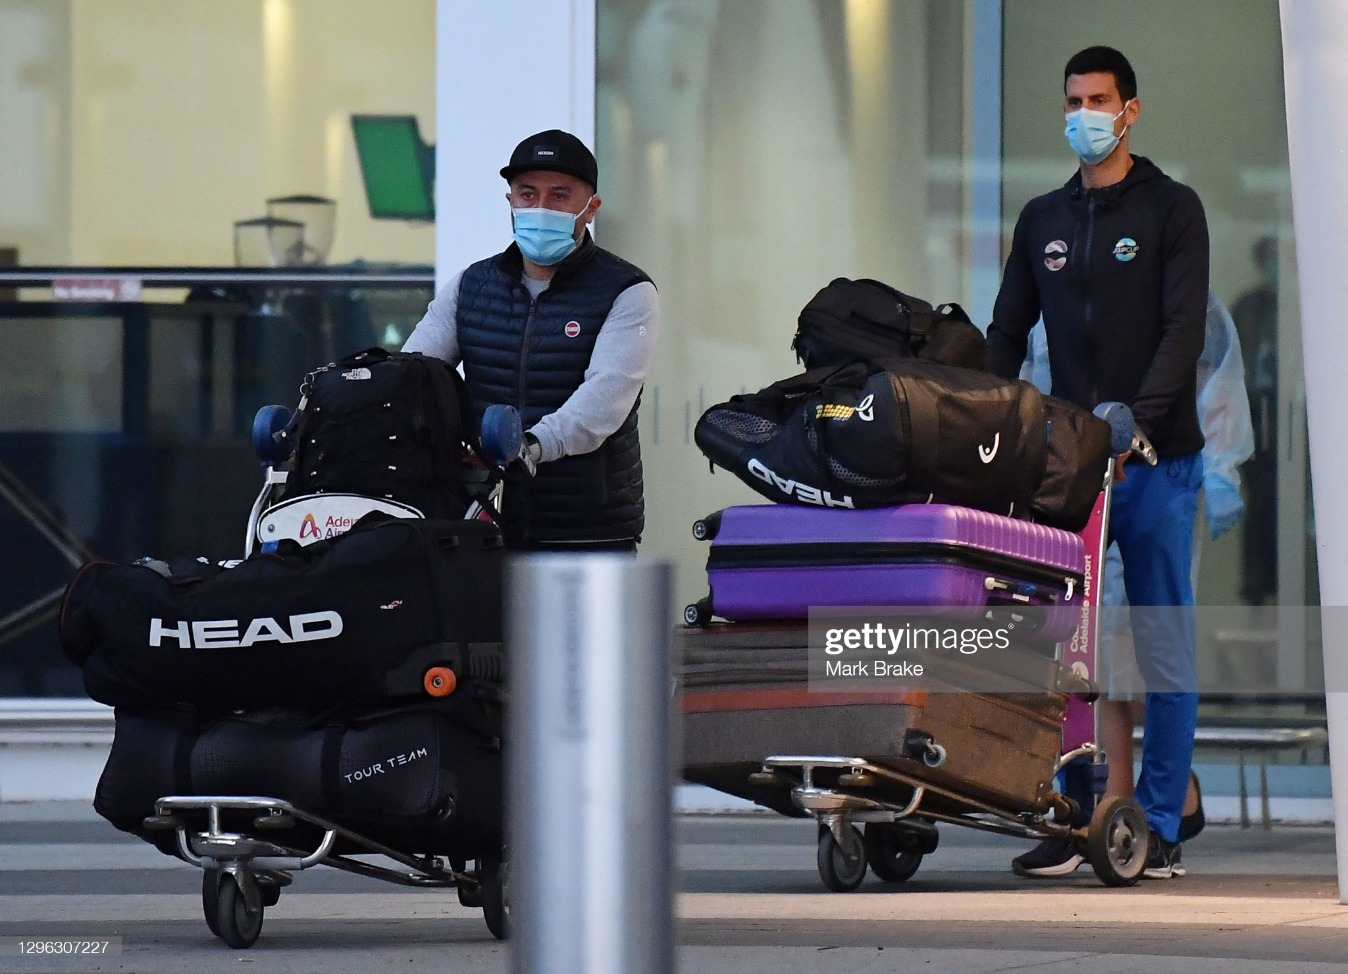 Tennis Players And Officials Arrive In Adelaide Ahead Of 2021 Australian Open : News Photo